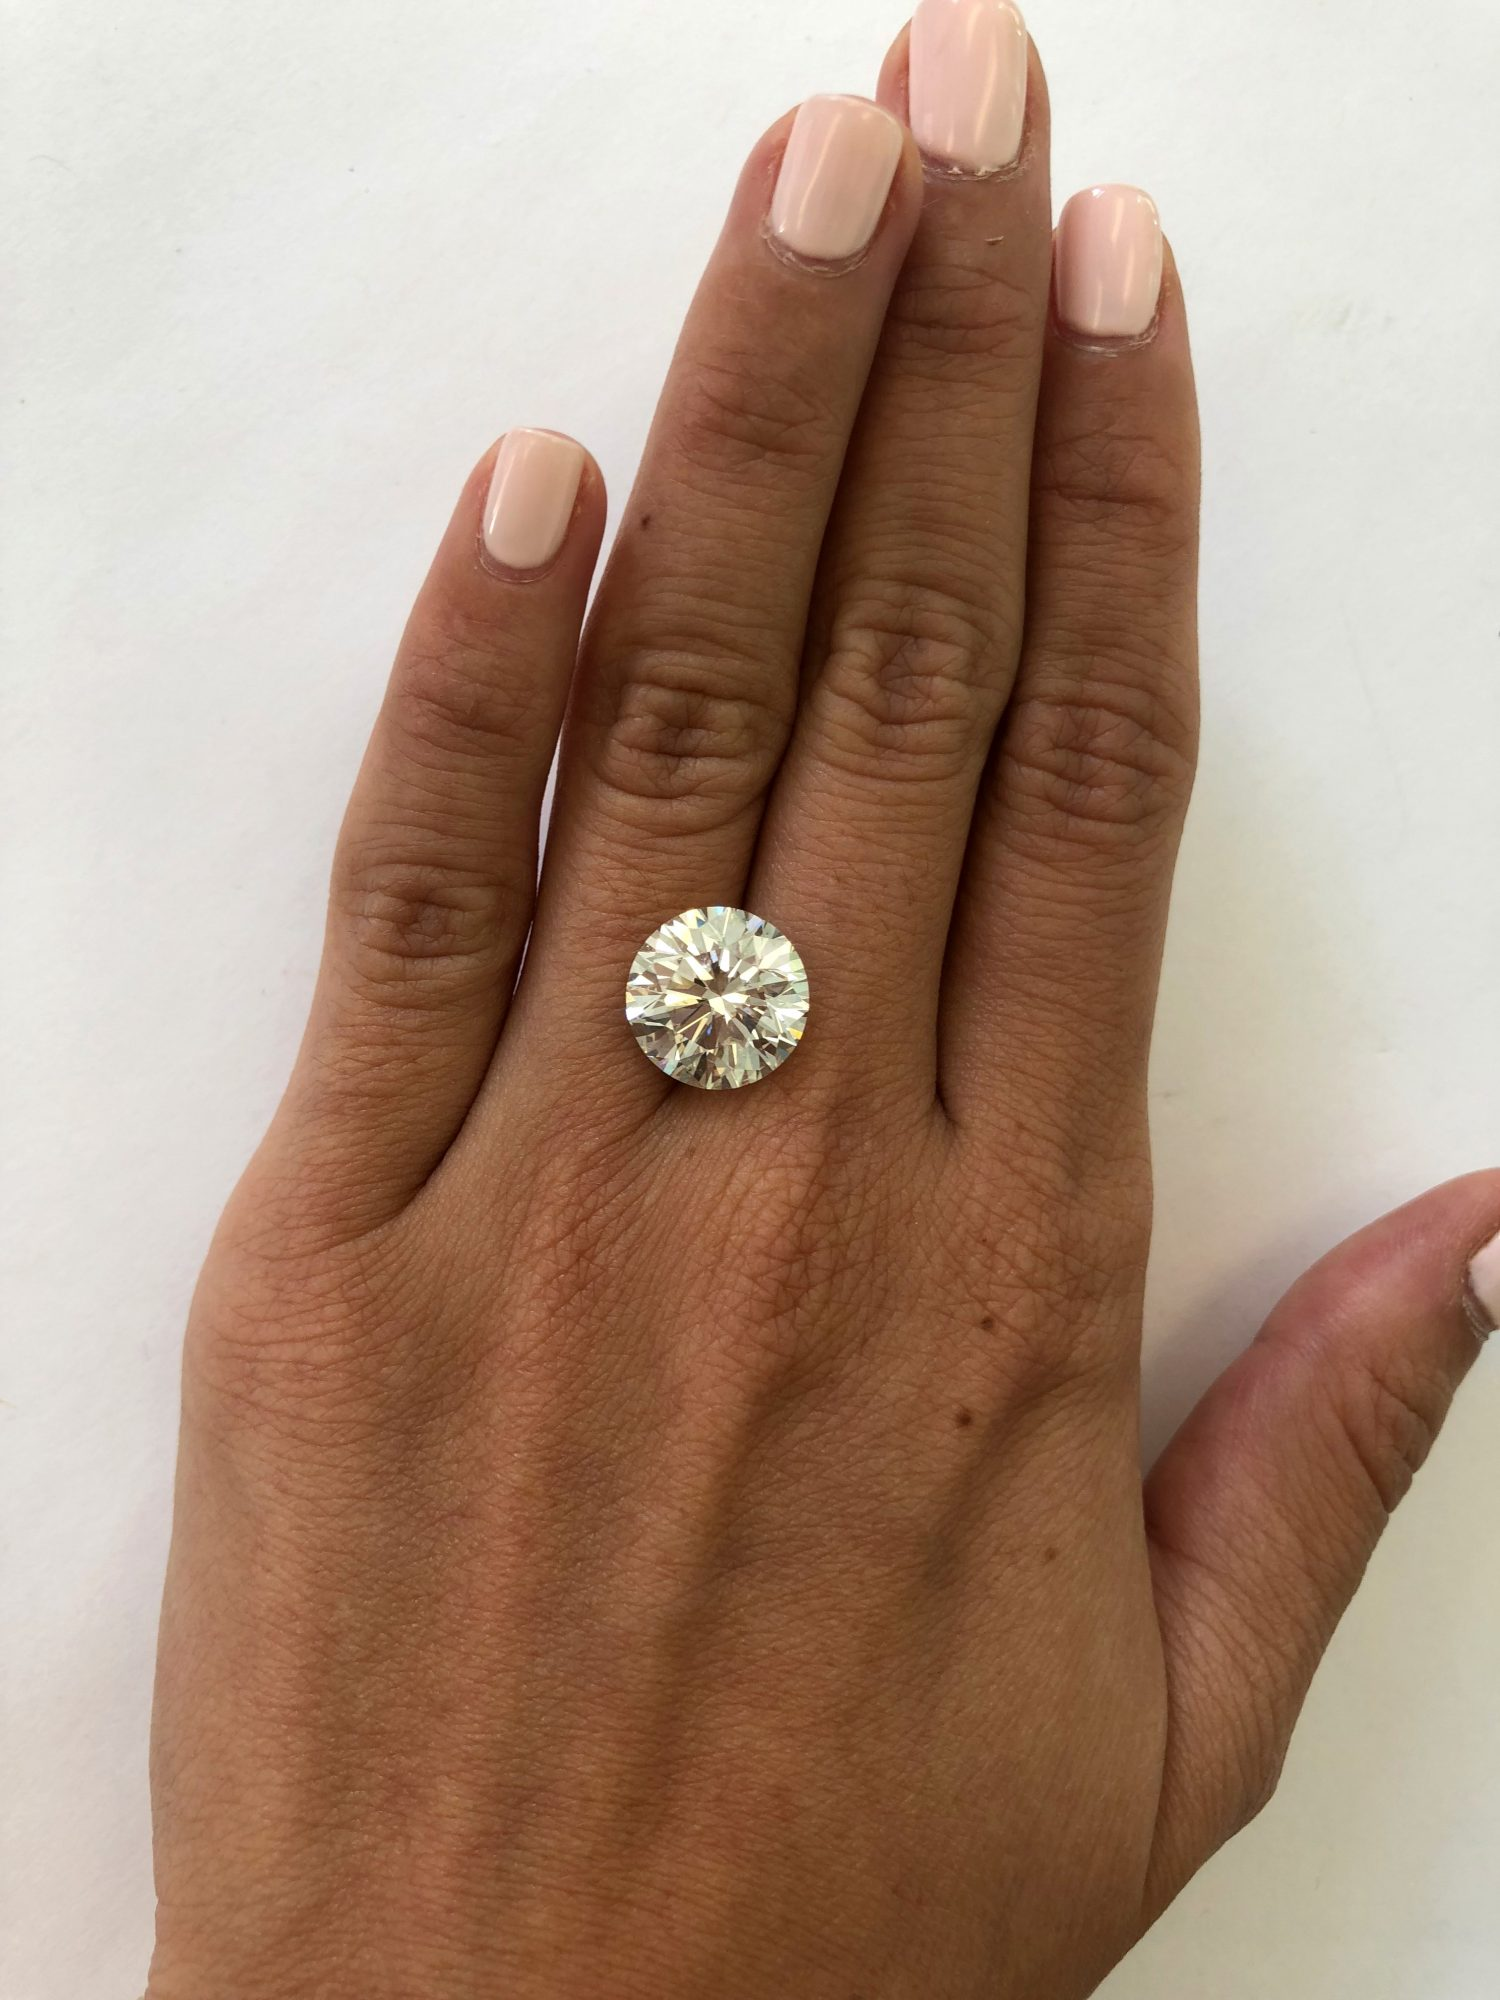 This Is What A Diamond Looks Like At Every Size Mdash From 5 Carats To 10 Martha Stewart